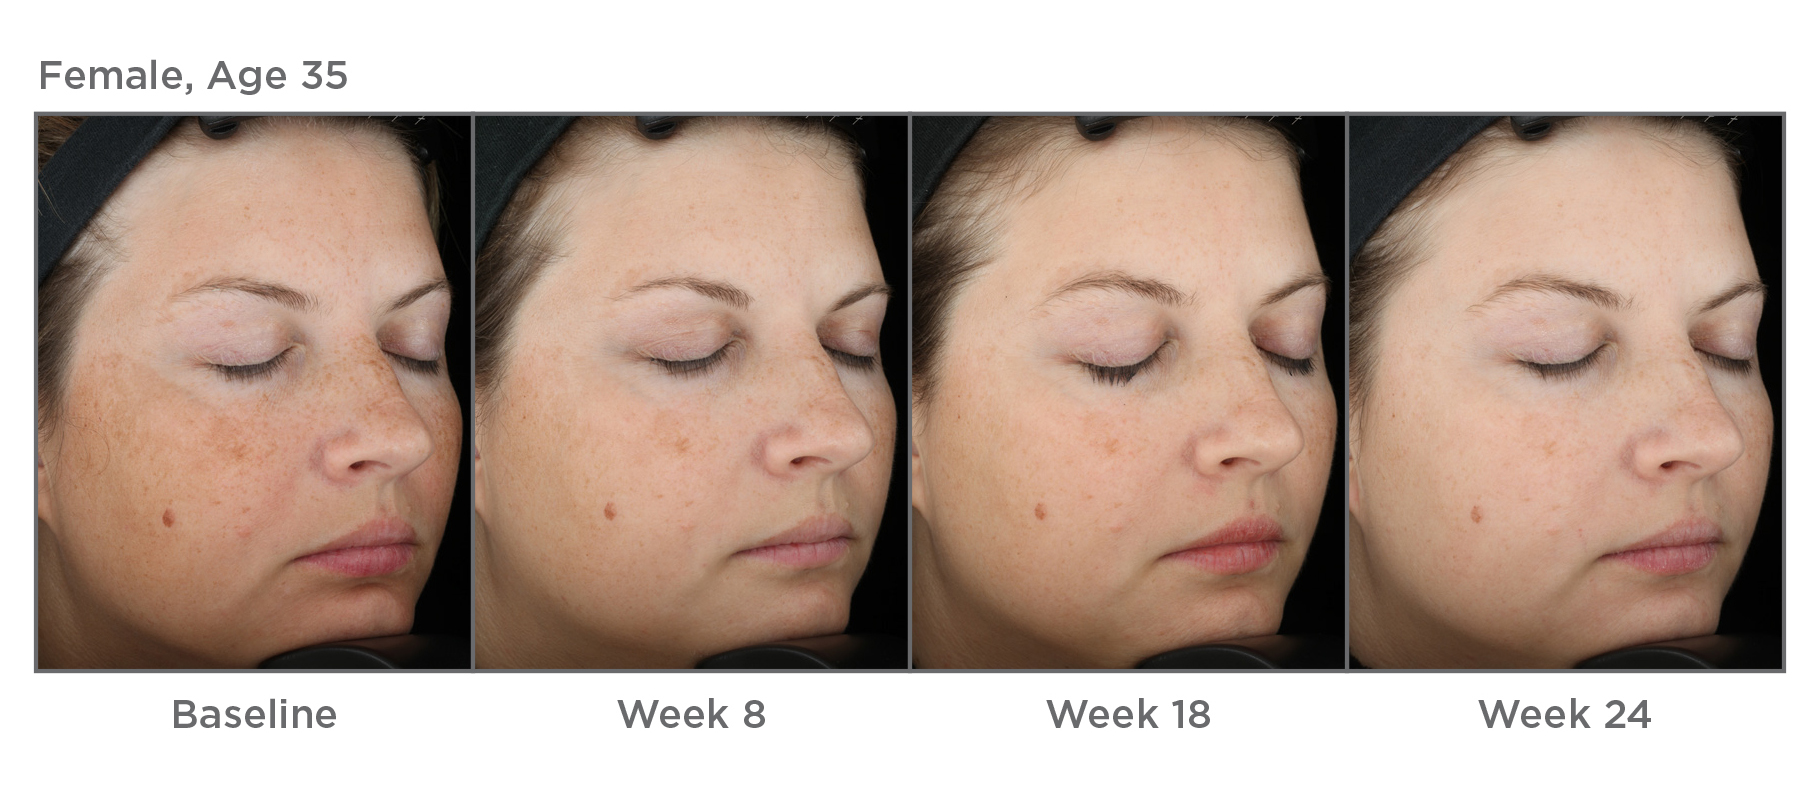 skinmedica results over a 24 week time period